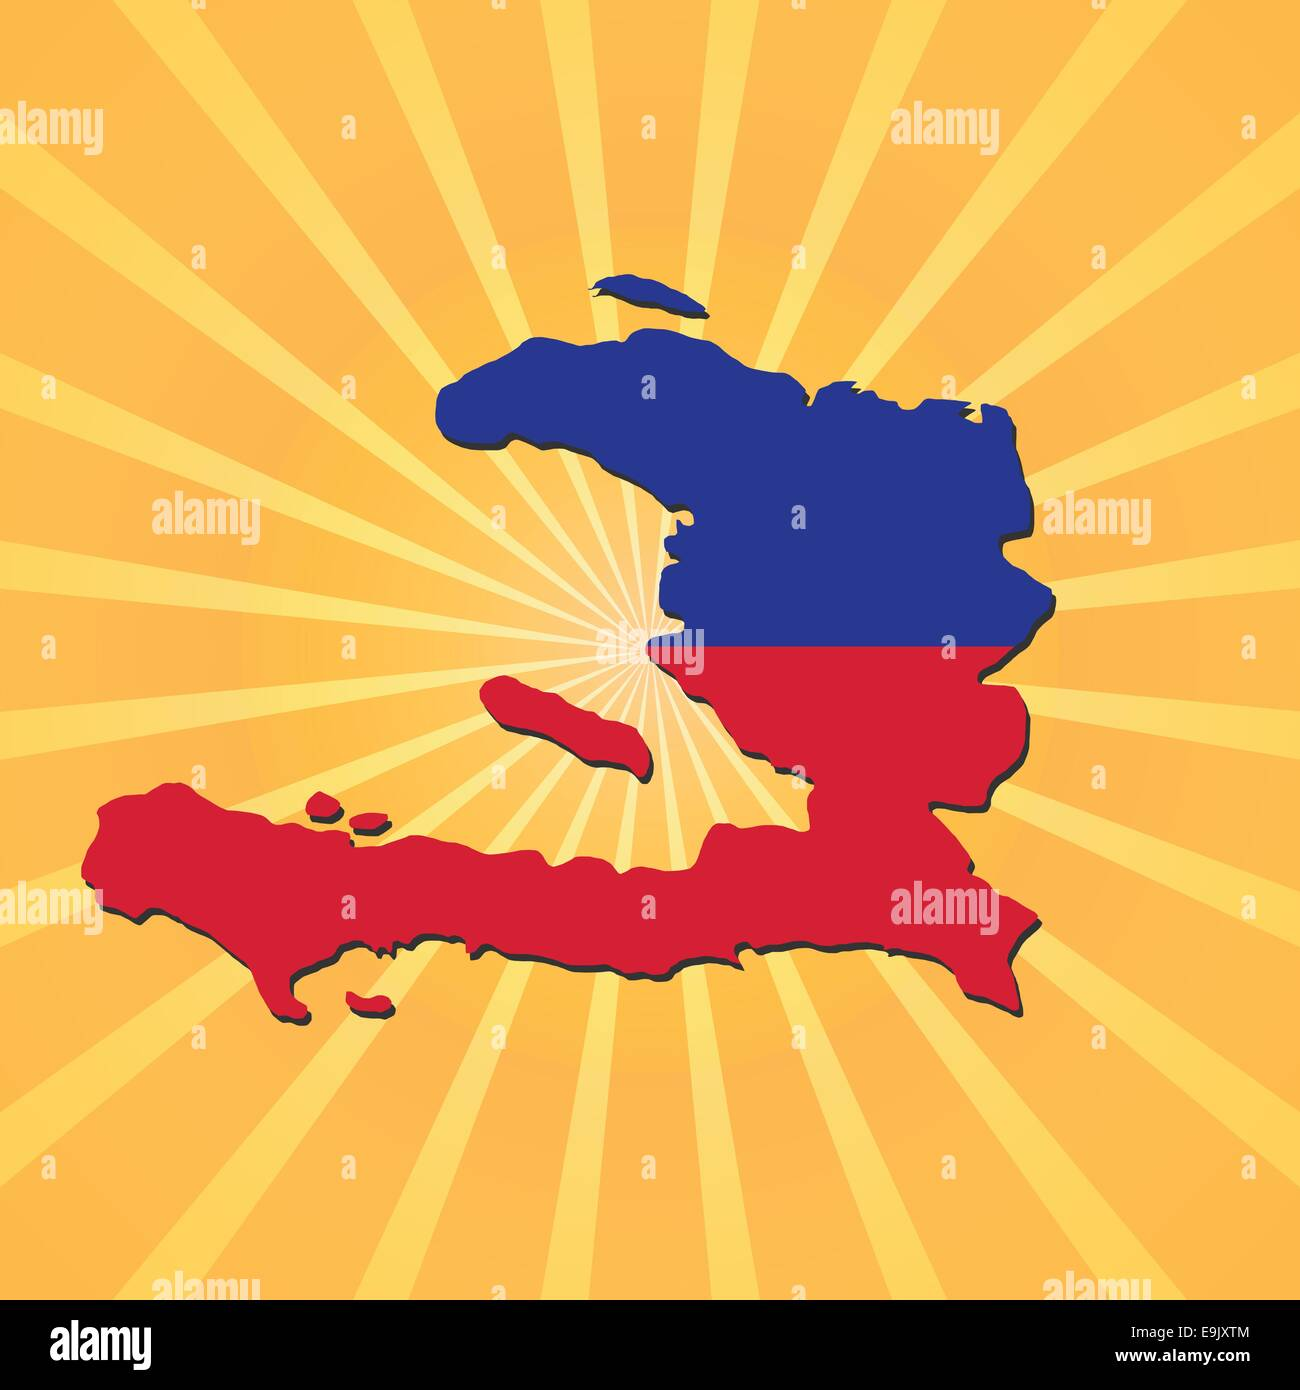 Haitian Map Stock Vector Images - Alamy